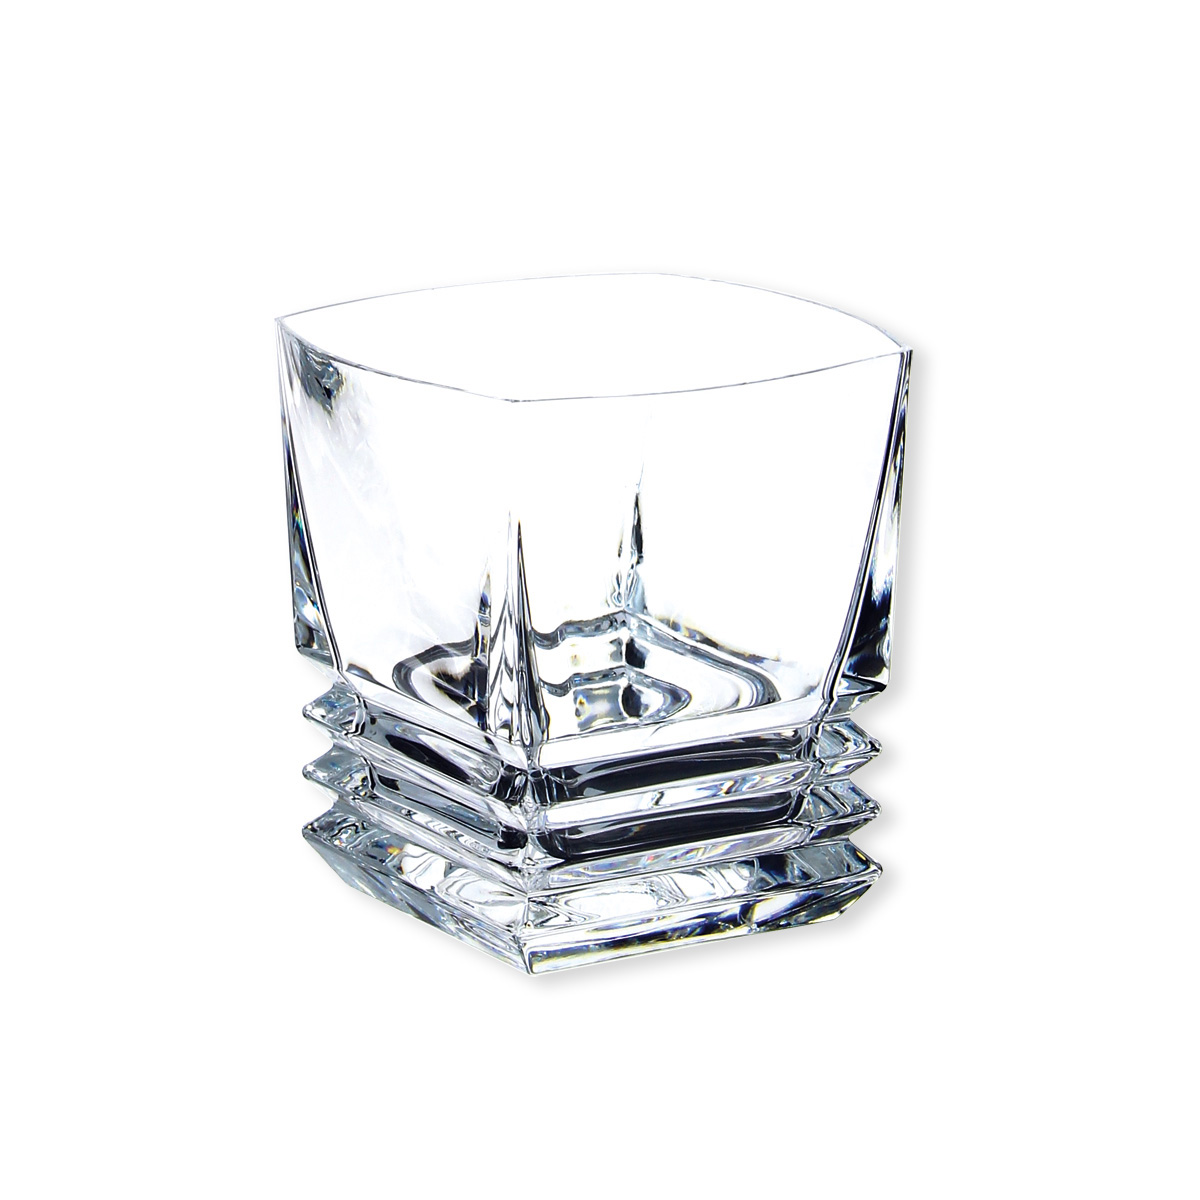 Verre Whisky Tete De Mort Verre A Whisky De Collection